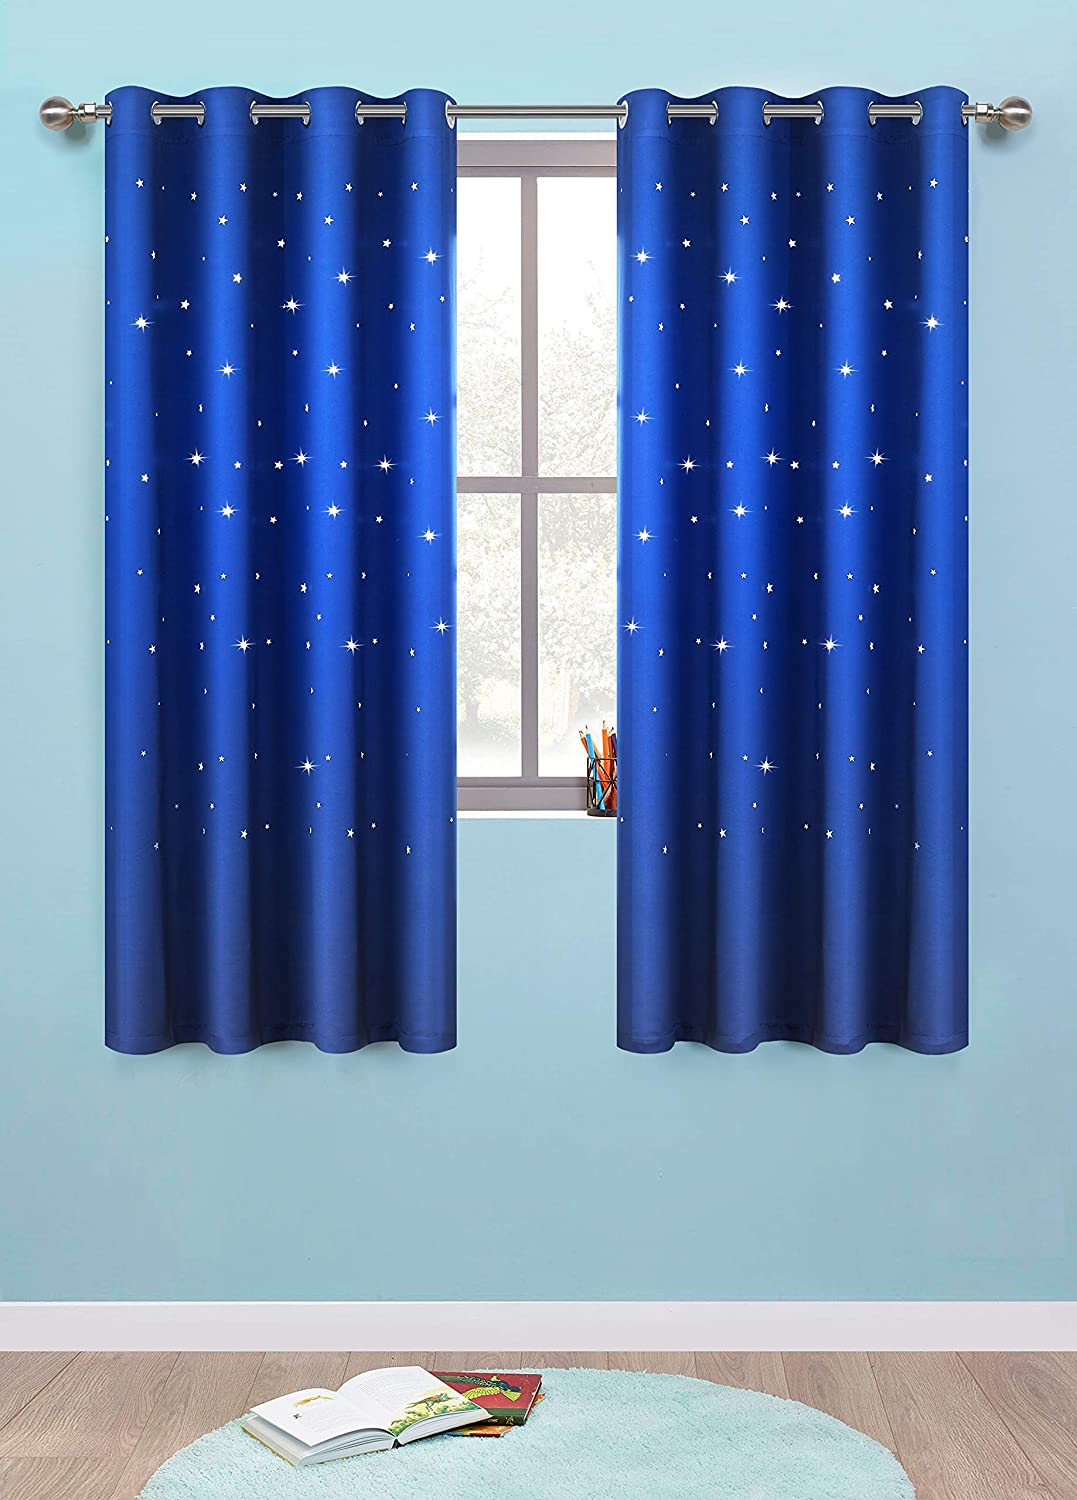 Anjee Romantic Starry Sky Space Curtains For Kids Room (2 Panels 2  Tiebacks), Blackout Curtains With Punched Out Stars, Cute Window Drapes(52  X 63 Inches, ...